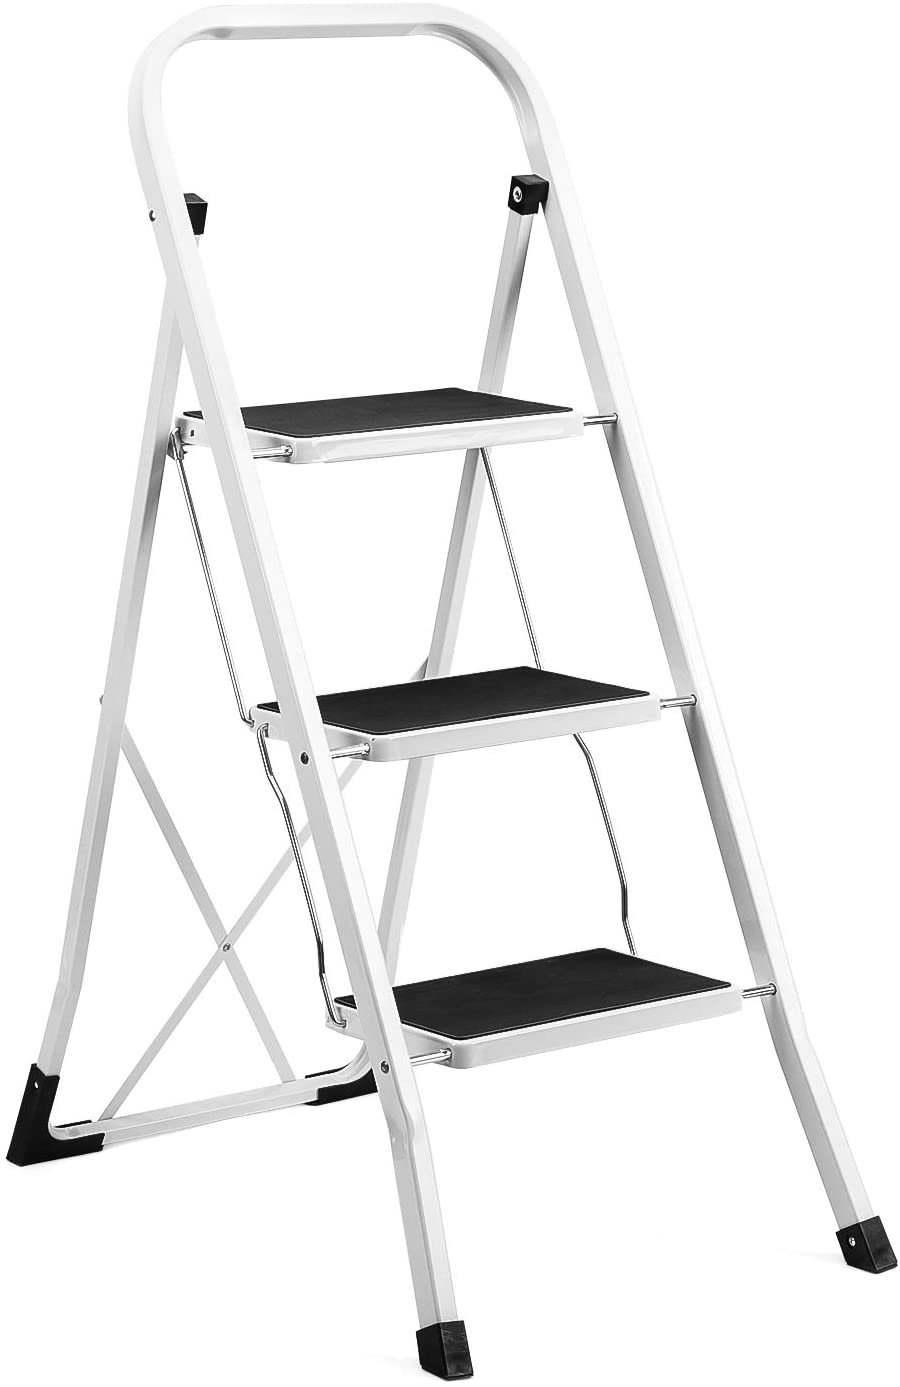 Delxo 3 Step Ladder Folding Step Stool Ladder with Handgrip Anti-Slip Sturdy and Wide Pedal Multi-Use for Household and Office Portable Step Stool Steel 330lbs White (3 Feet)